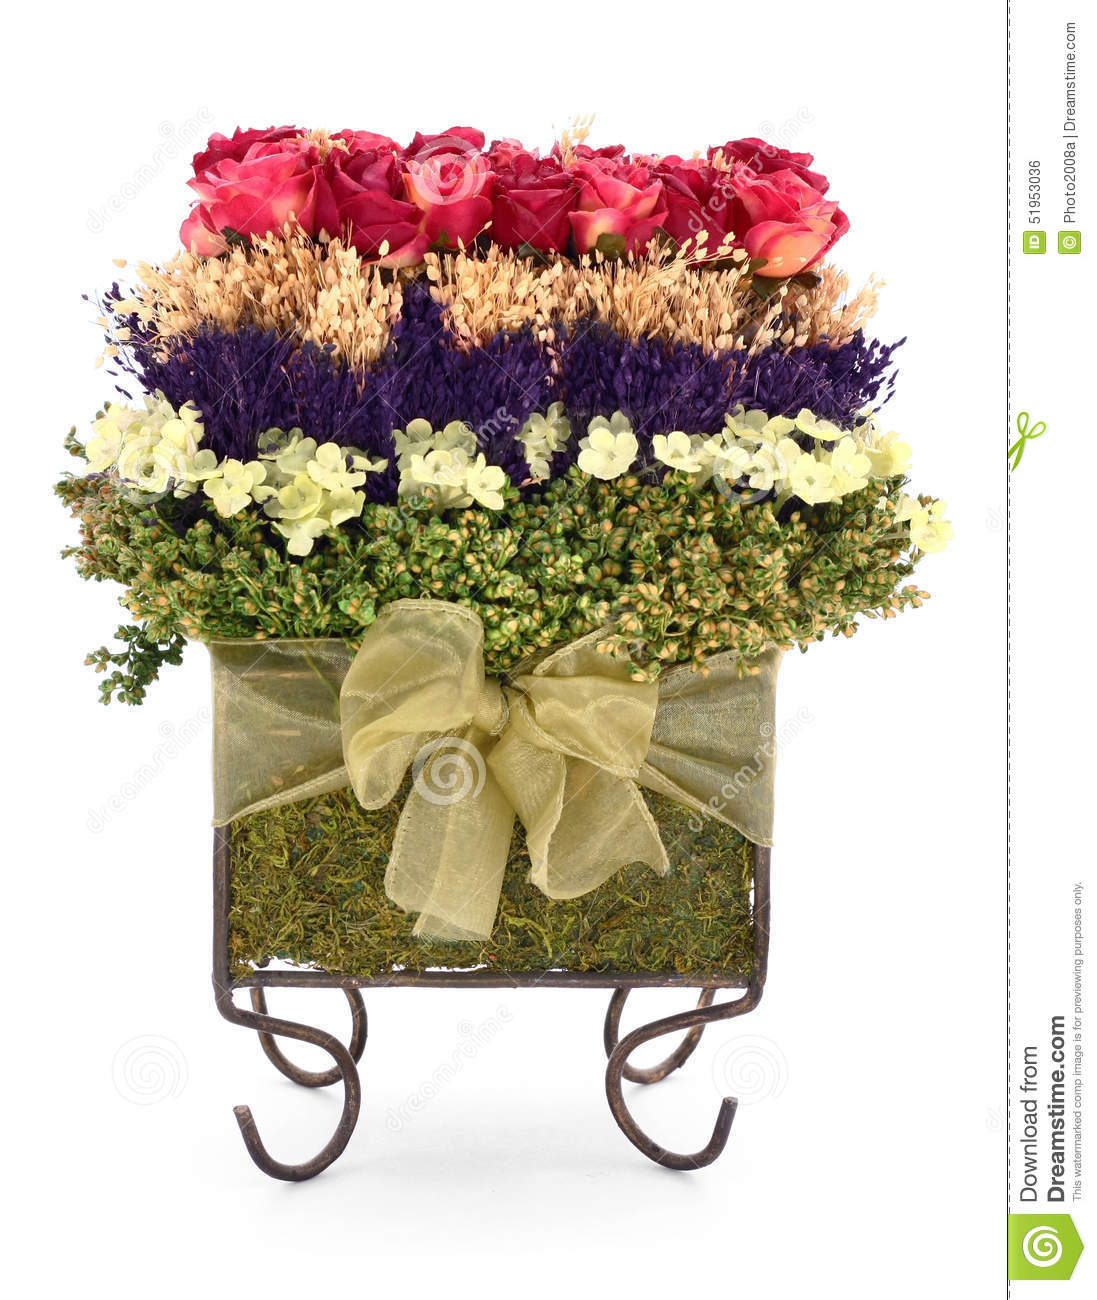 311 Topiary Bouquet Photos Free Royalty Free Stock Photos From Dreamstime